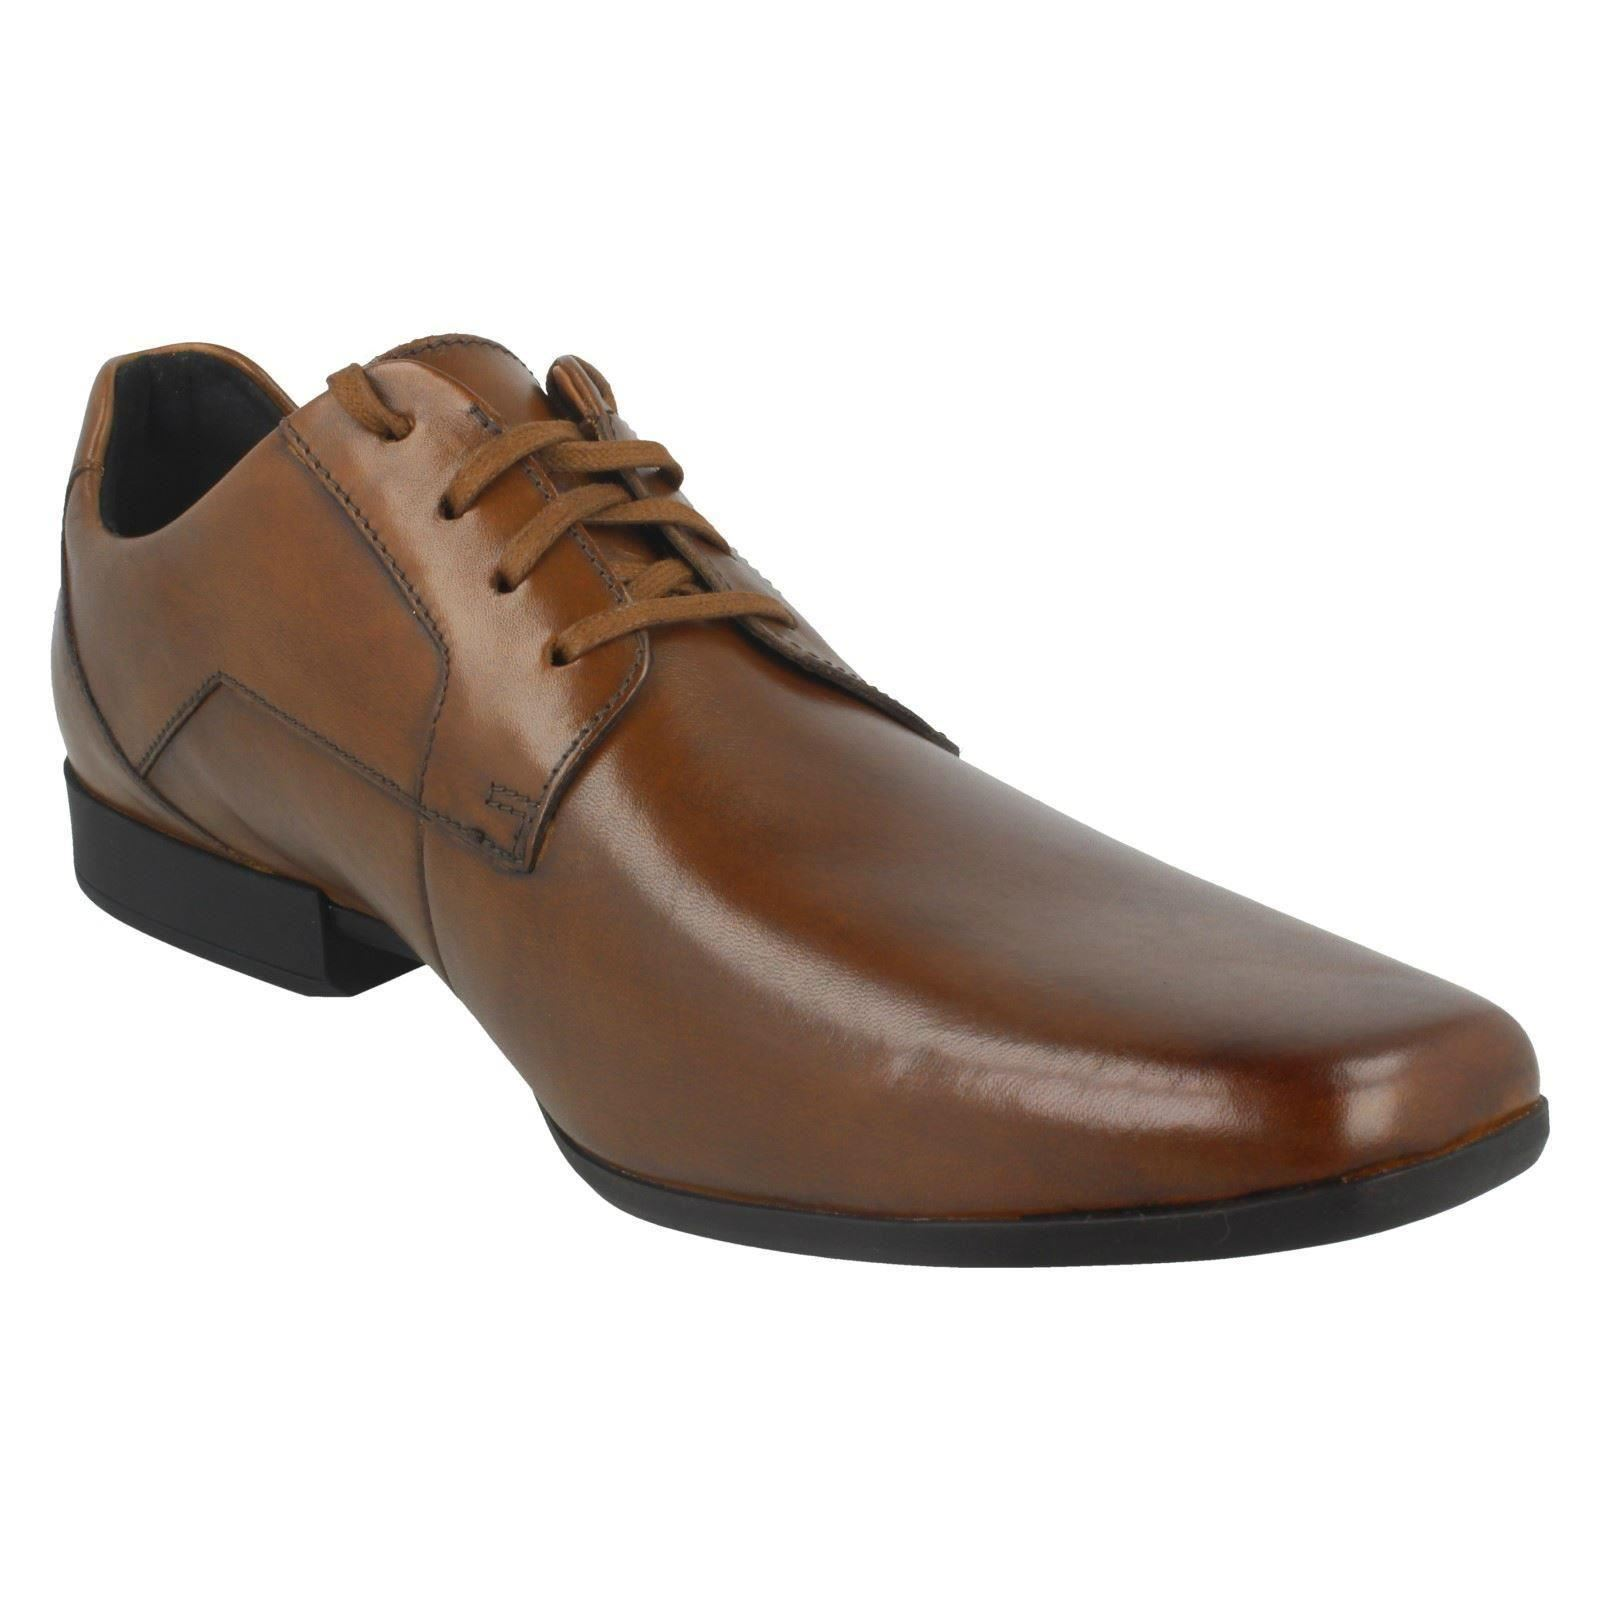 Uomo Schuhes Clarks Formal Lace Up Schuhes Uomo Glement Lace 4f2219